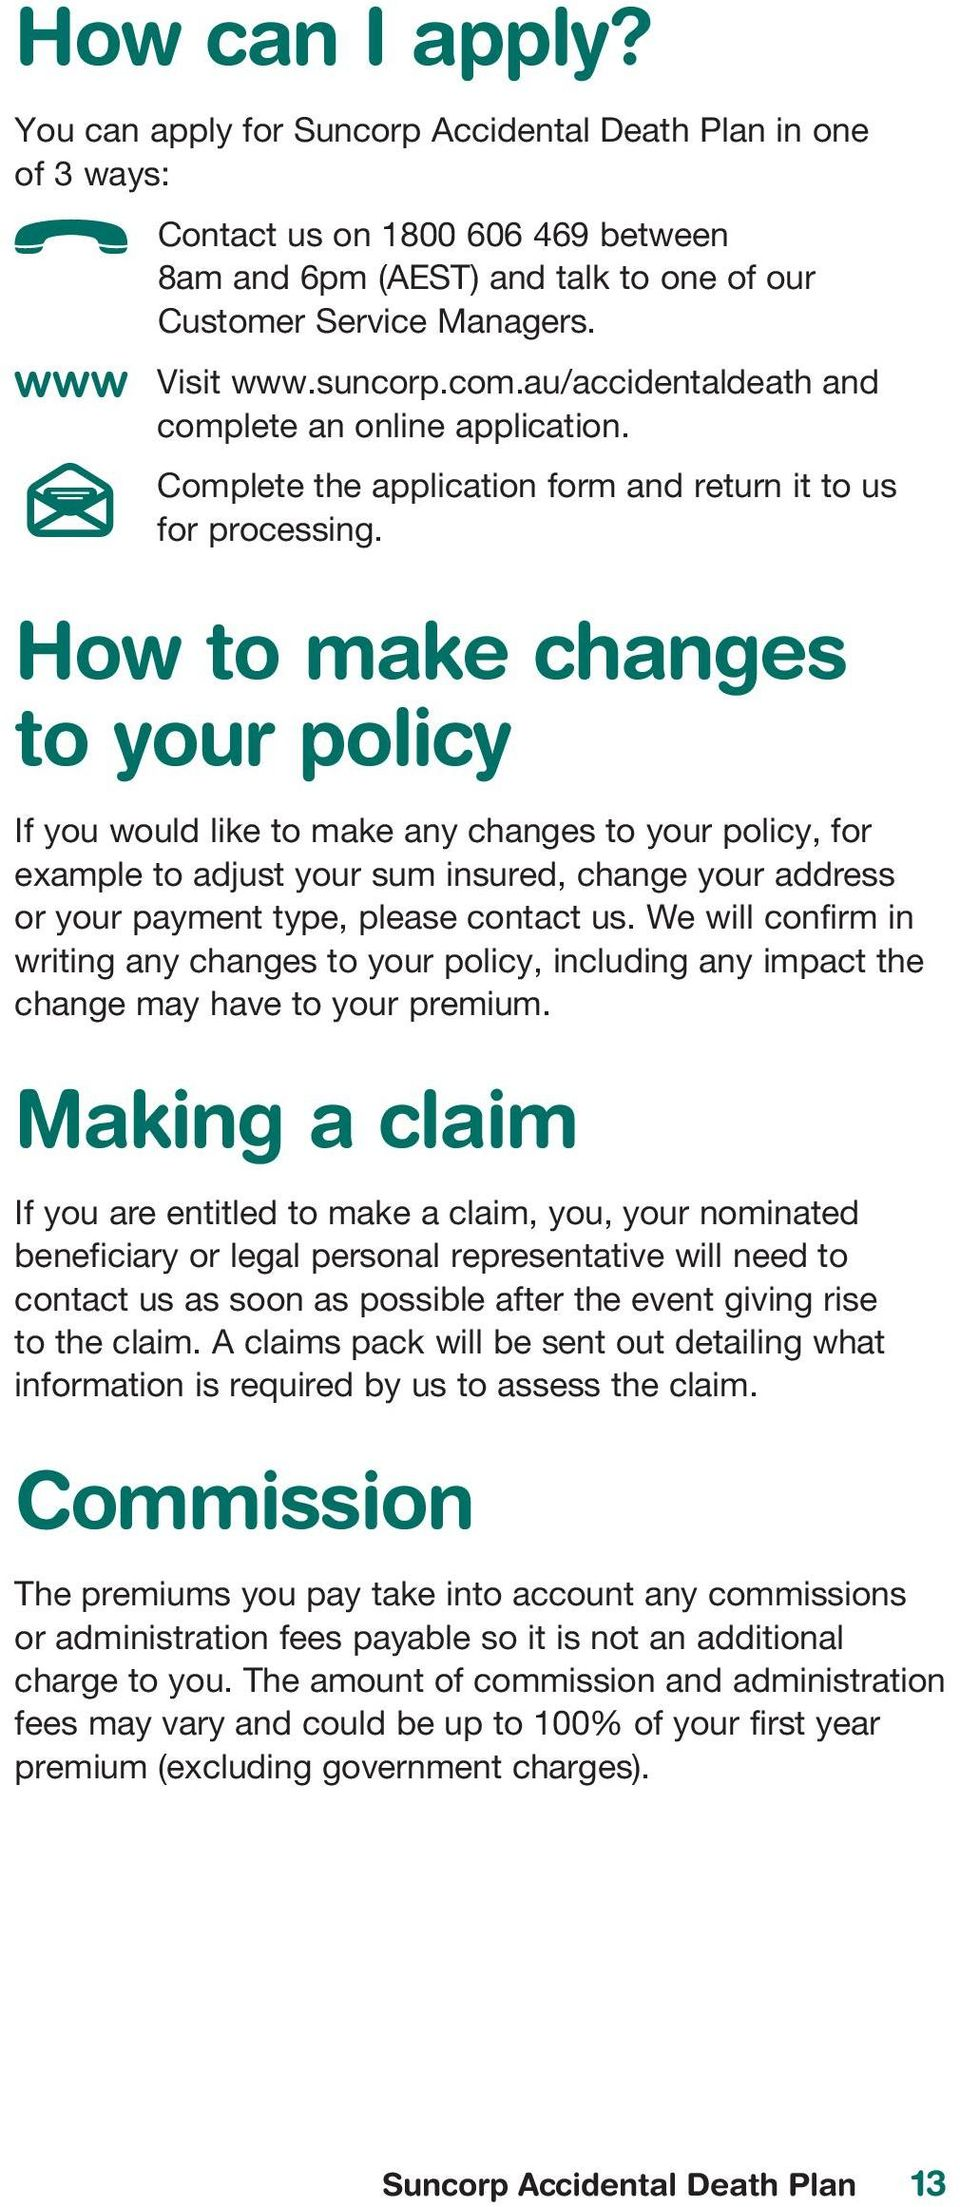 How to make changes to your policy If you would like to make any changes to your policy, for example to adjust your sum insured, change your address or your payment type, please contact us.